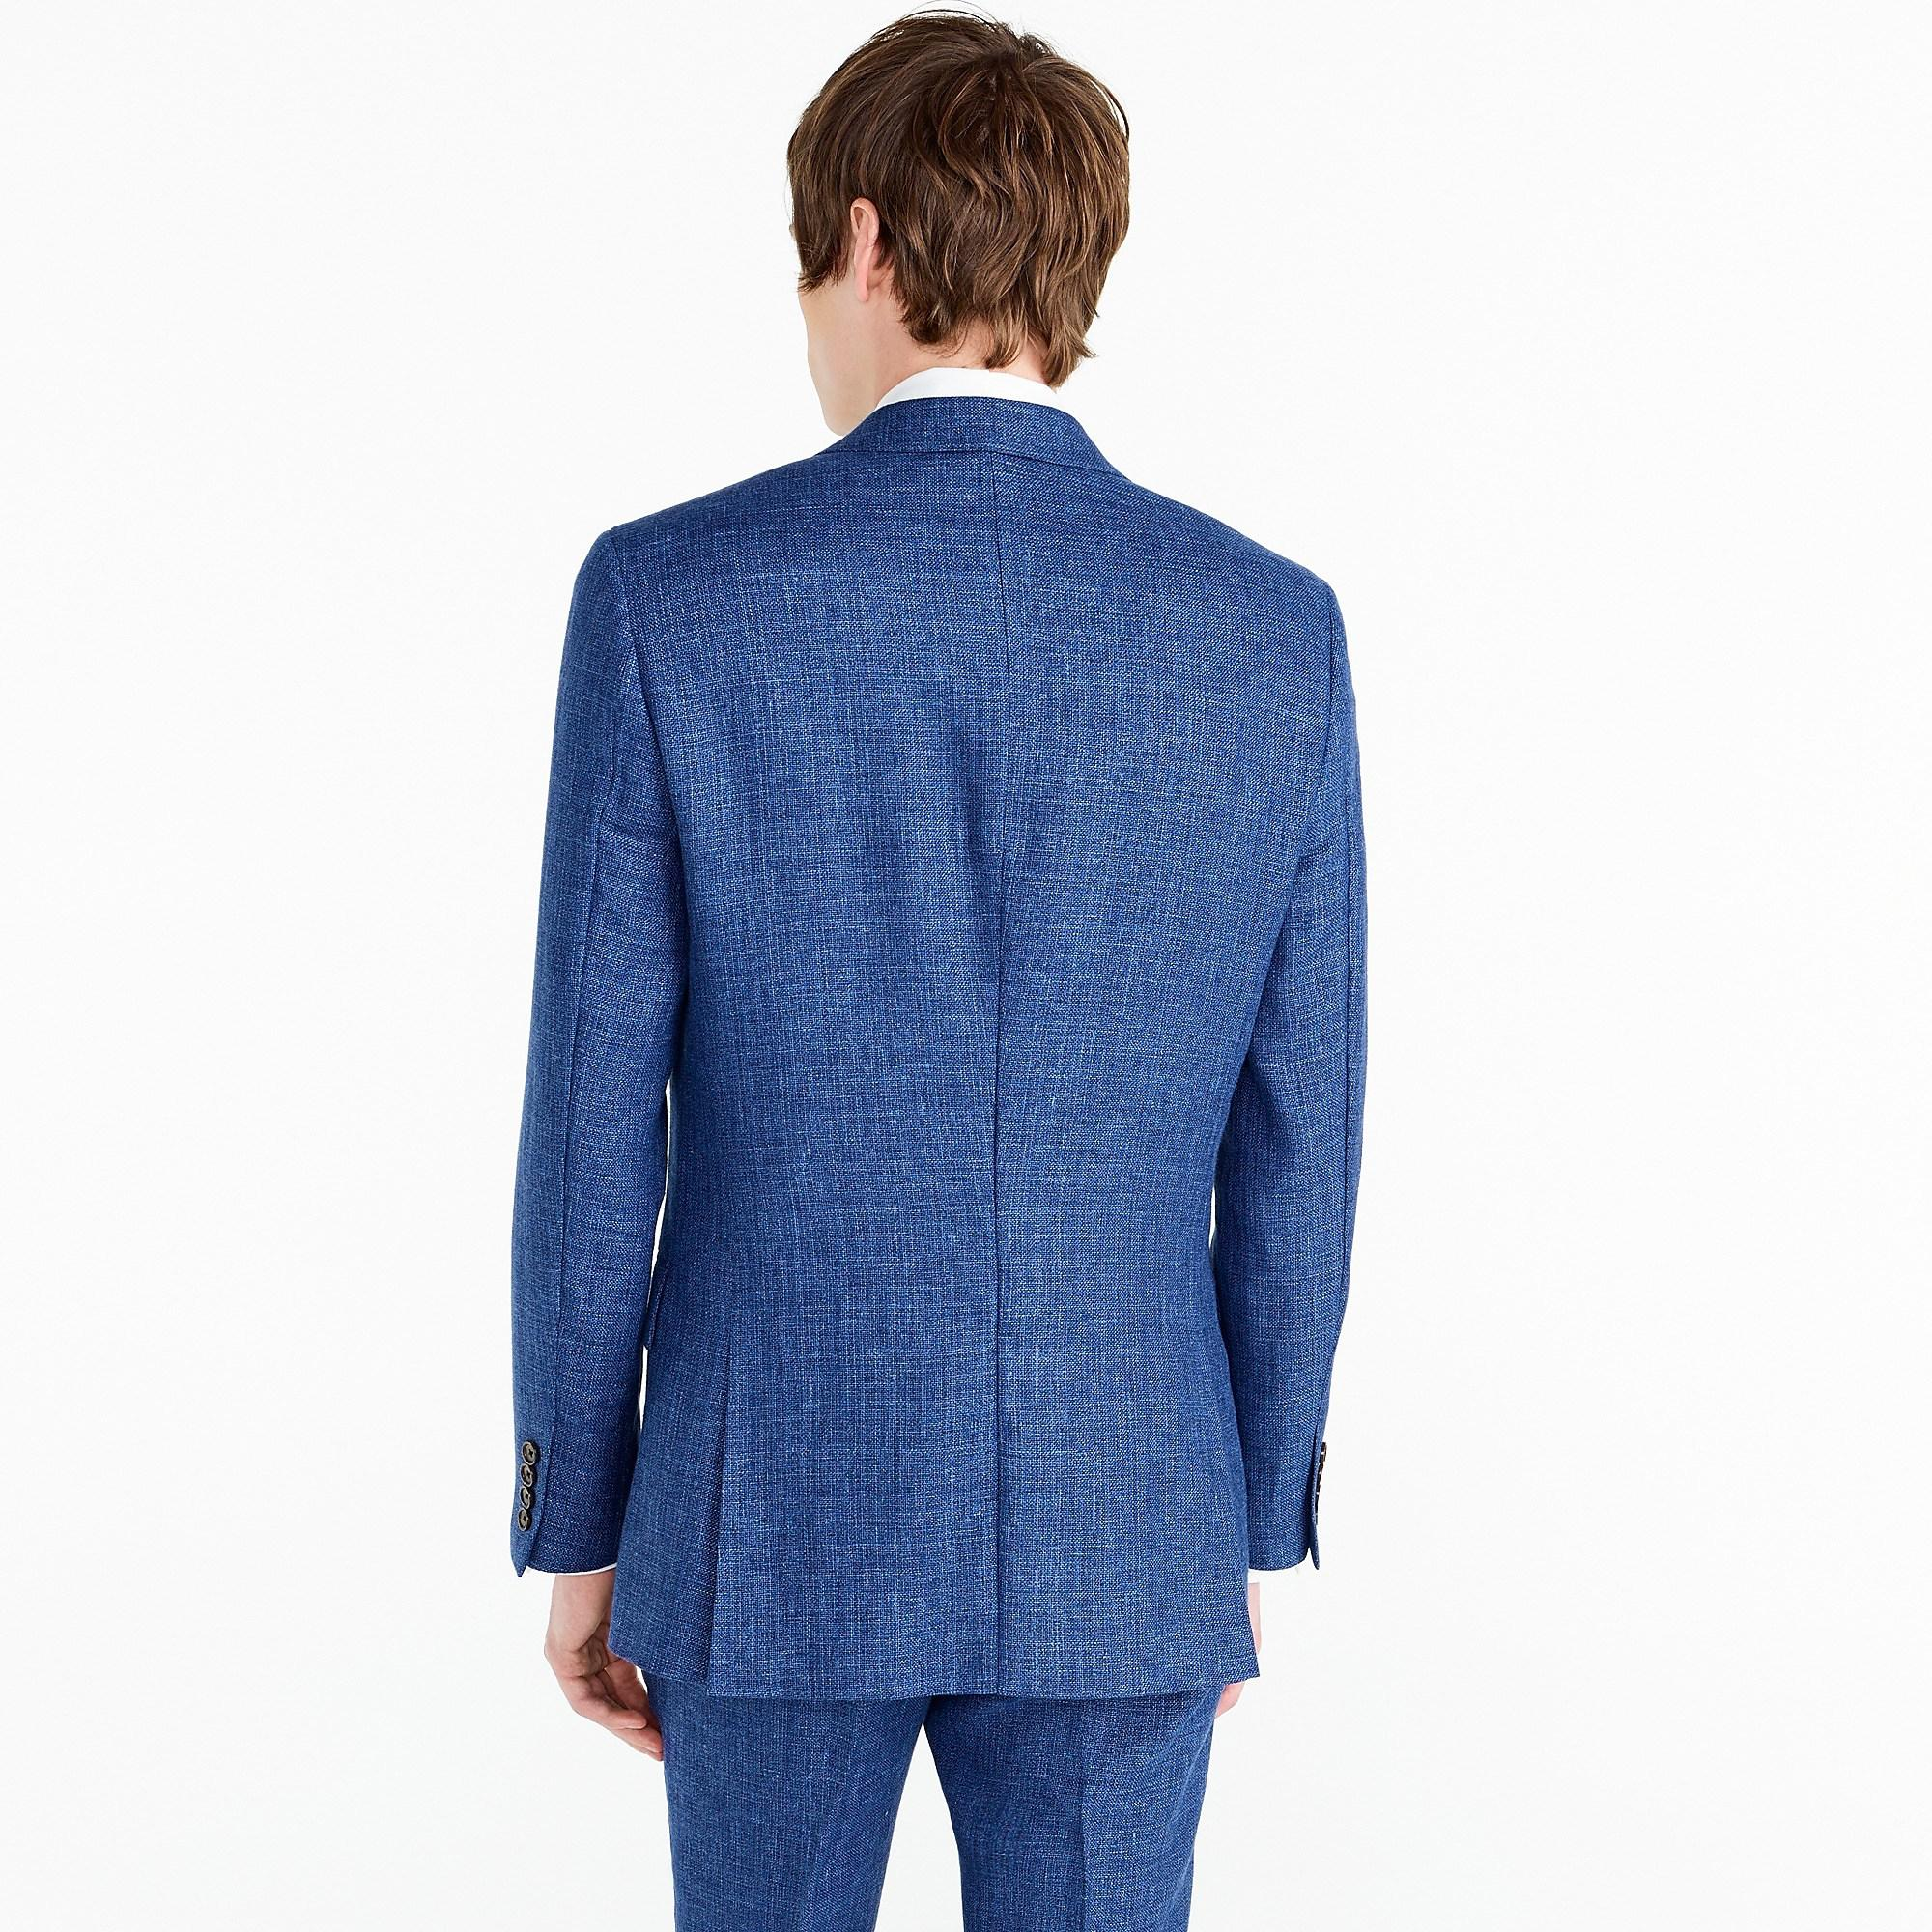 J.Crew Ludlow Slim-fit Suit Jacket In Blue Italian Linen for Men